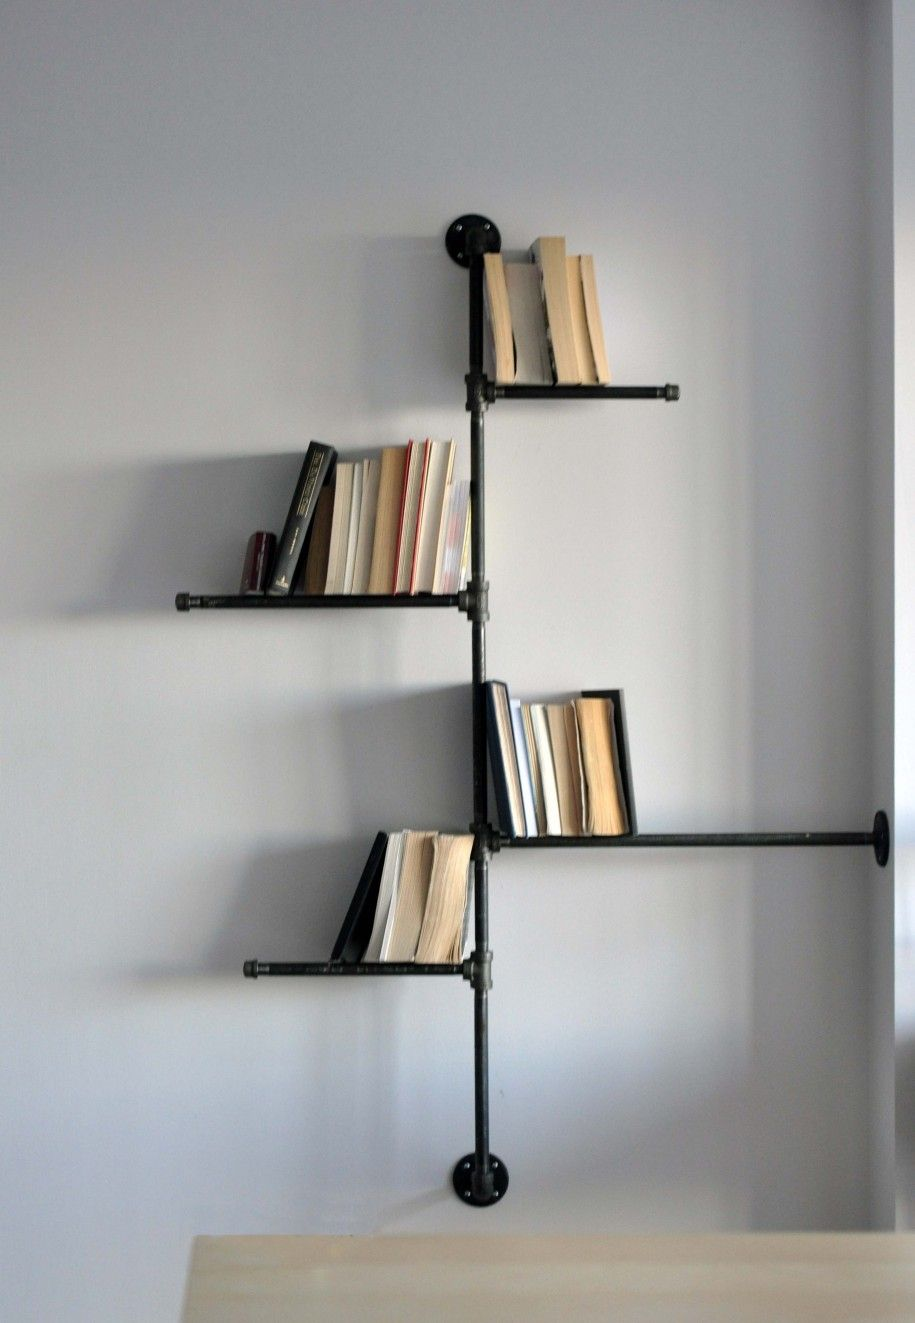 23 Hanging Wall Shelves Furniture Designs Ideas Plans: Pin On Decorating Ideas